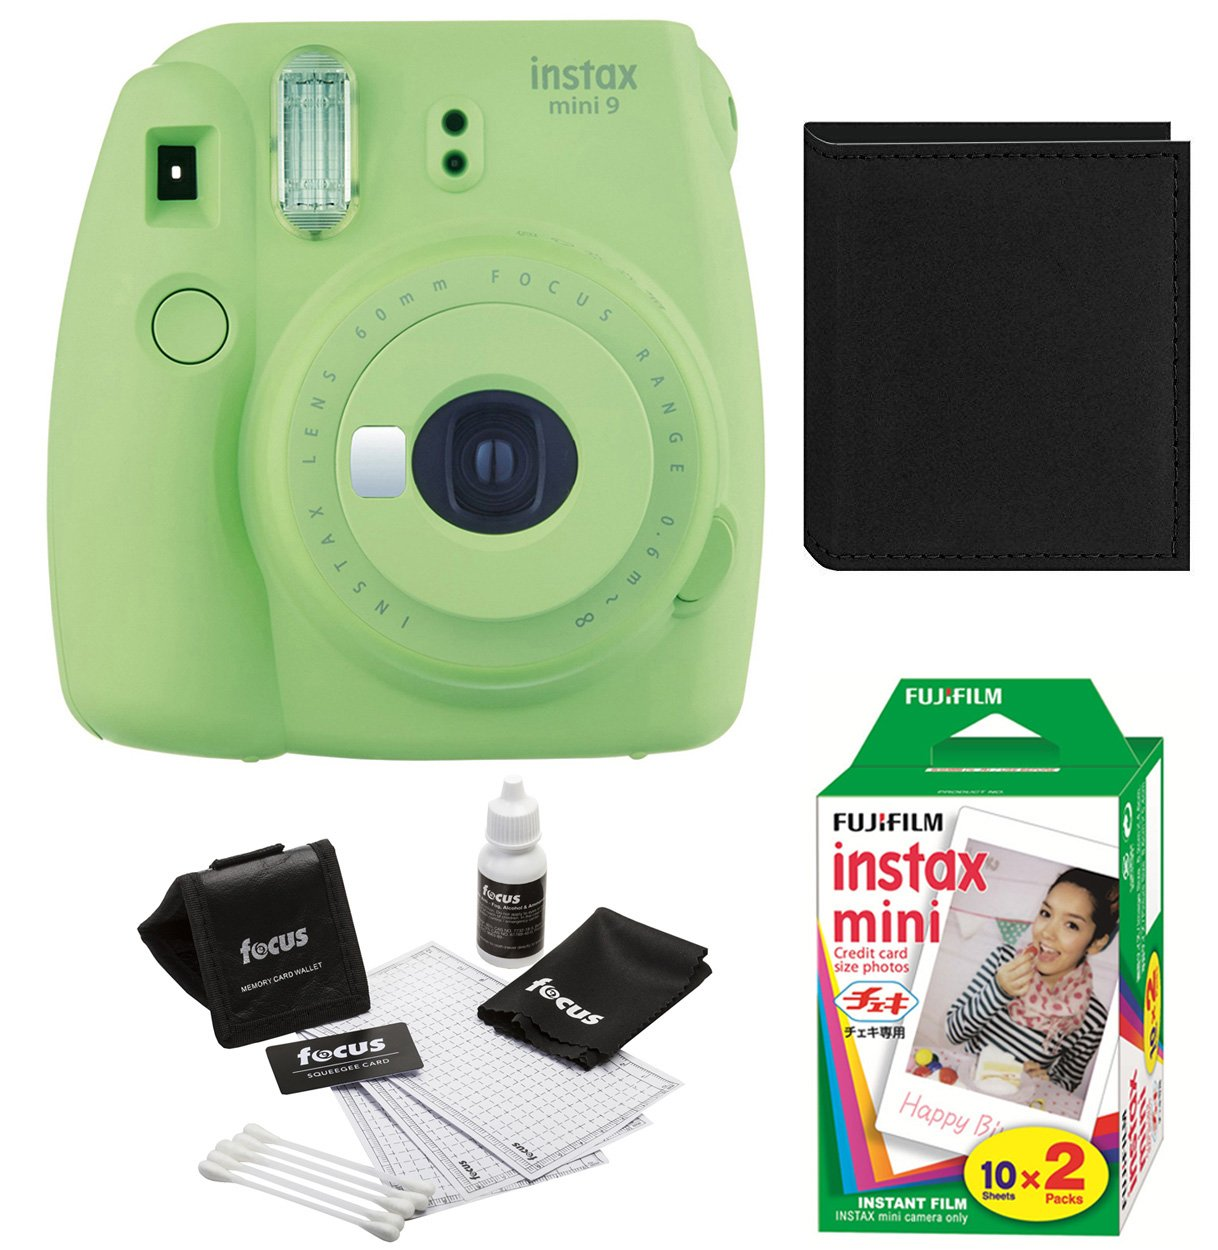 Fujfiom Instax Mini 9 (Lime Green) with 2 Pack Film and Photo Wallet